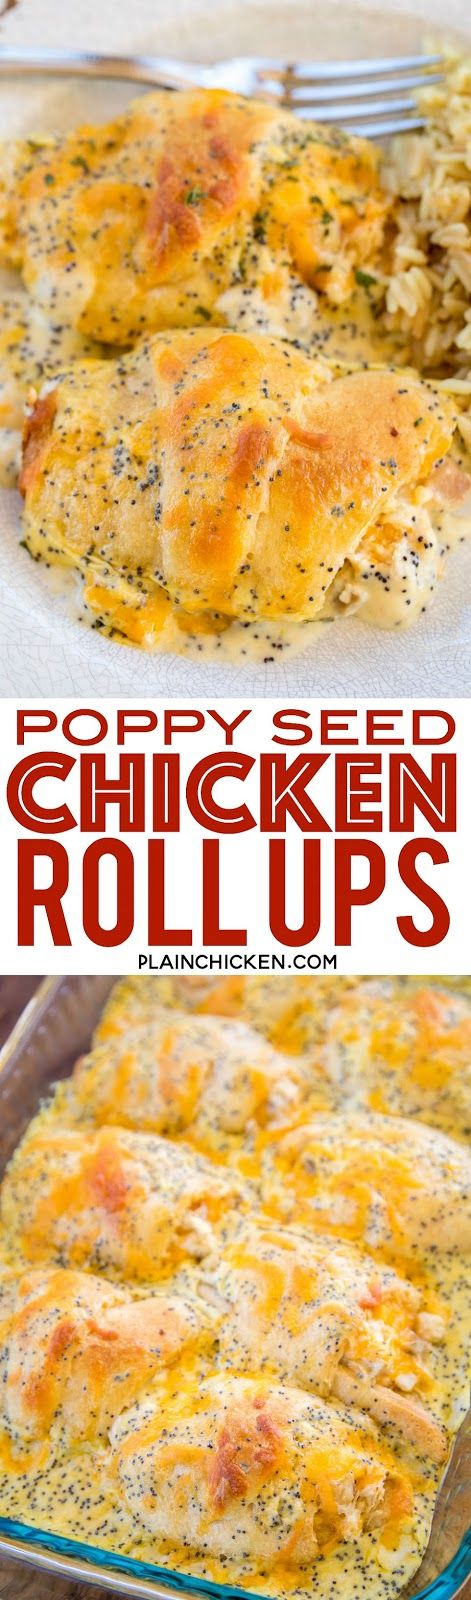 Poppy Seed Chicken Roll Ups - Plain Chicken